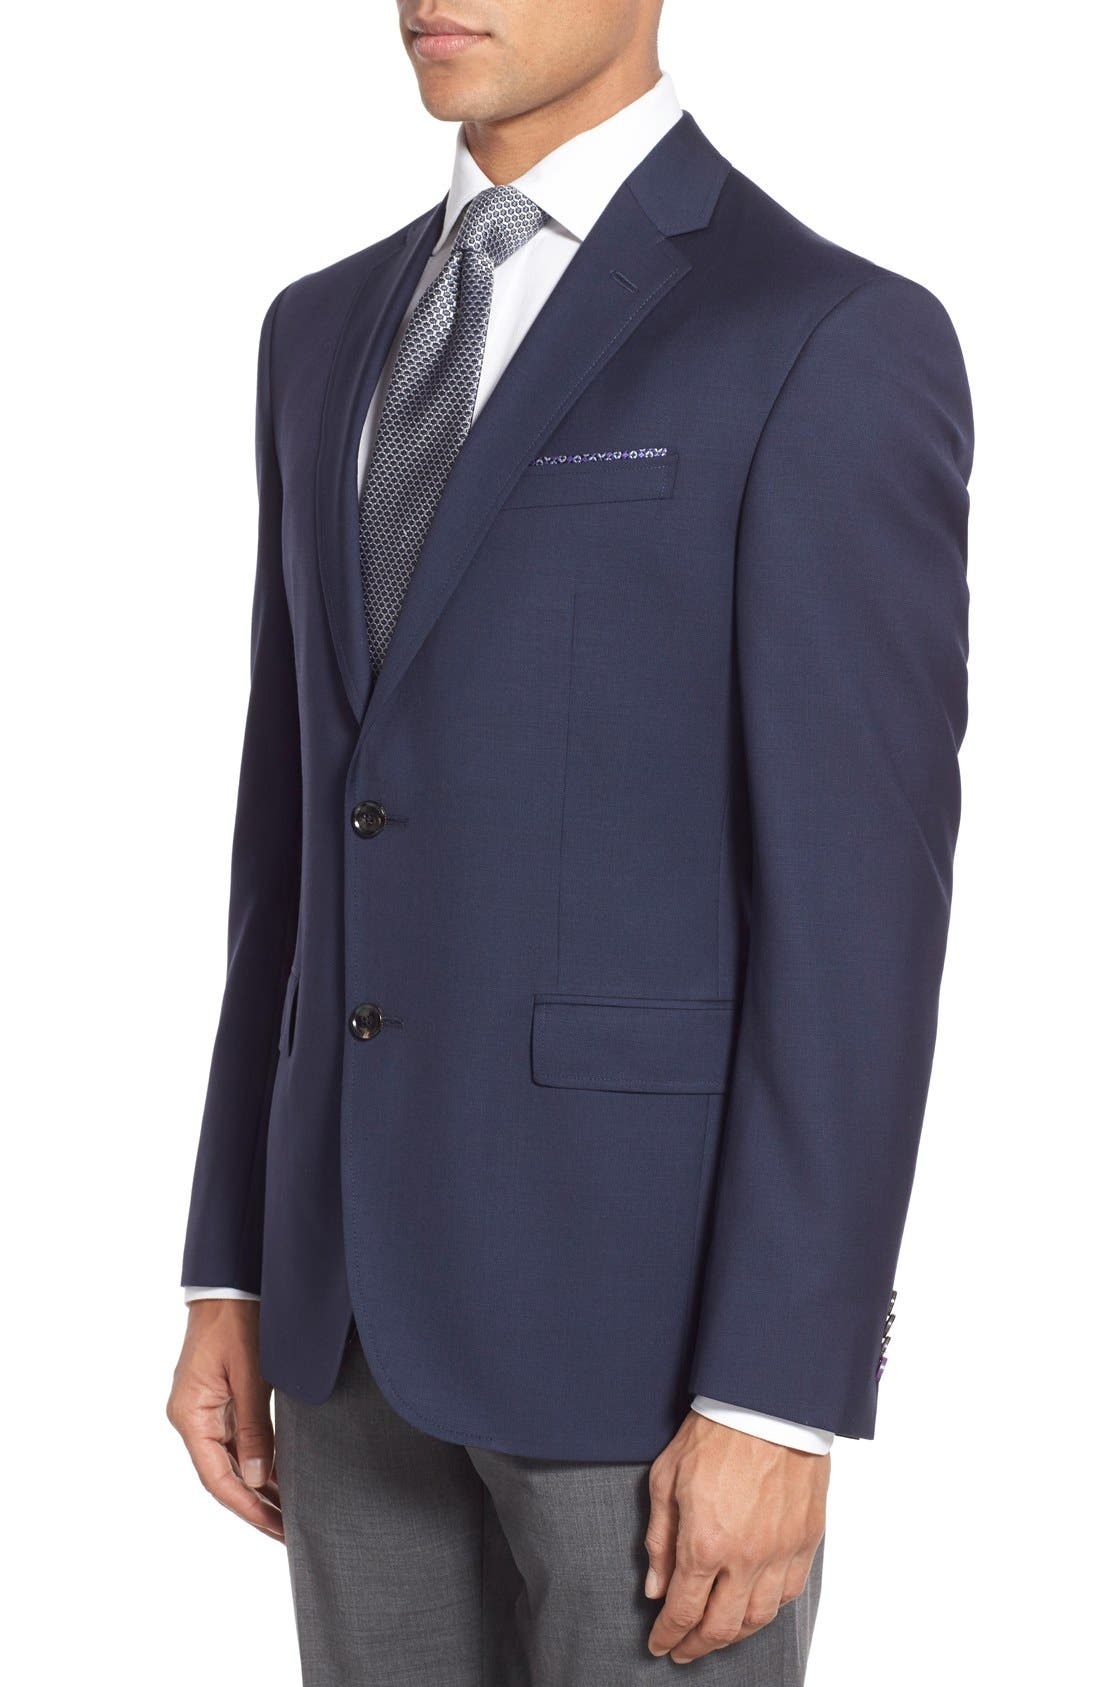 Trevi Trim Fit Wool Blazer,                             Alternate thumbnail 9, color,                             NAVY